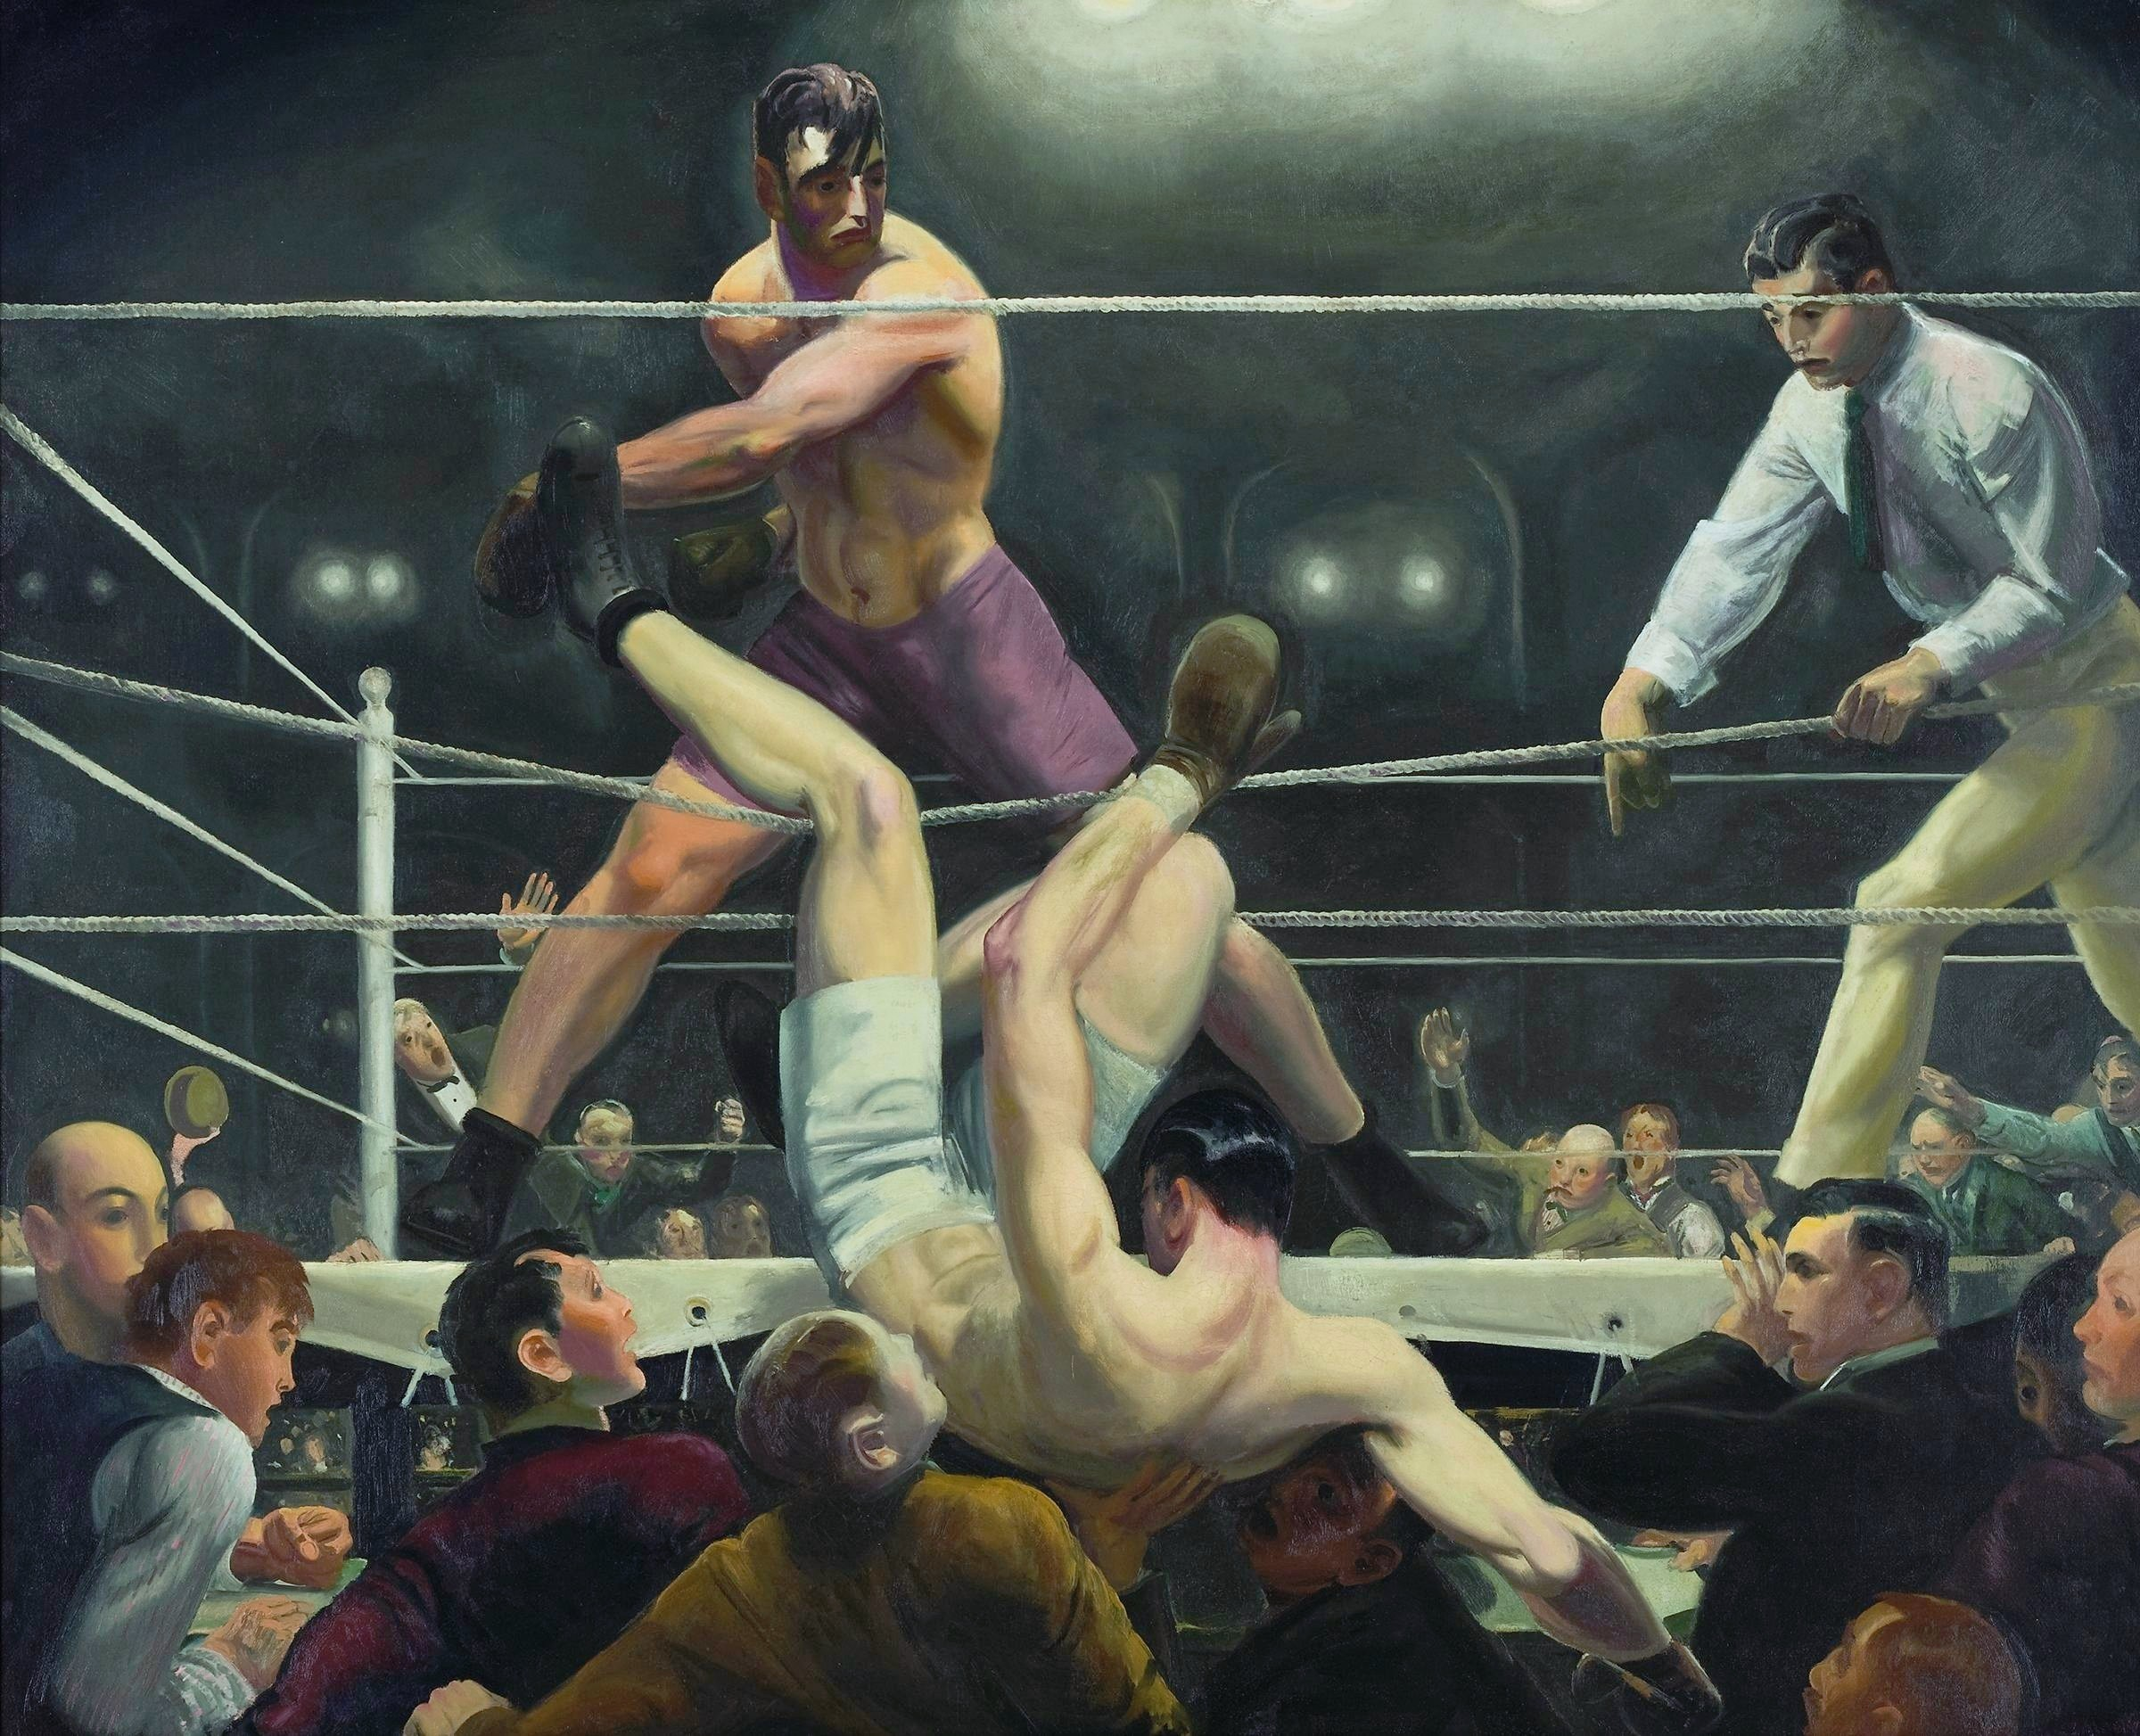 http://upload.wikimedia.org/wikipedia/commons/d/d0/Bellows_George_Dempsey_and_Firpo_1924.jpg